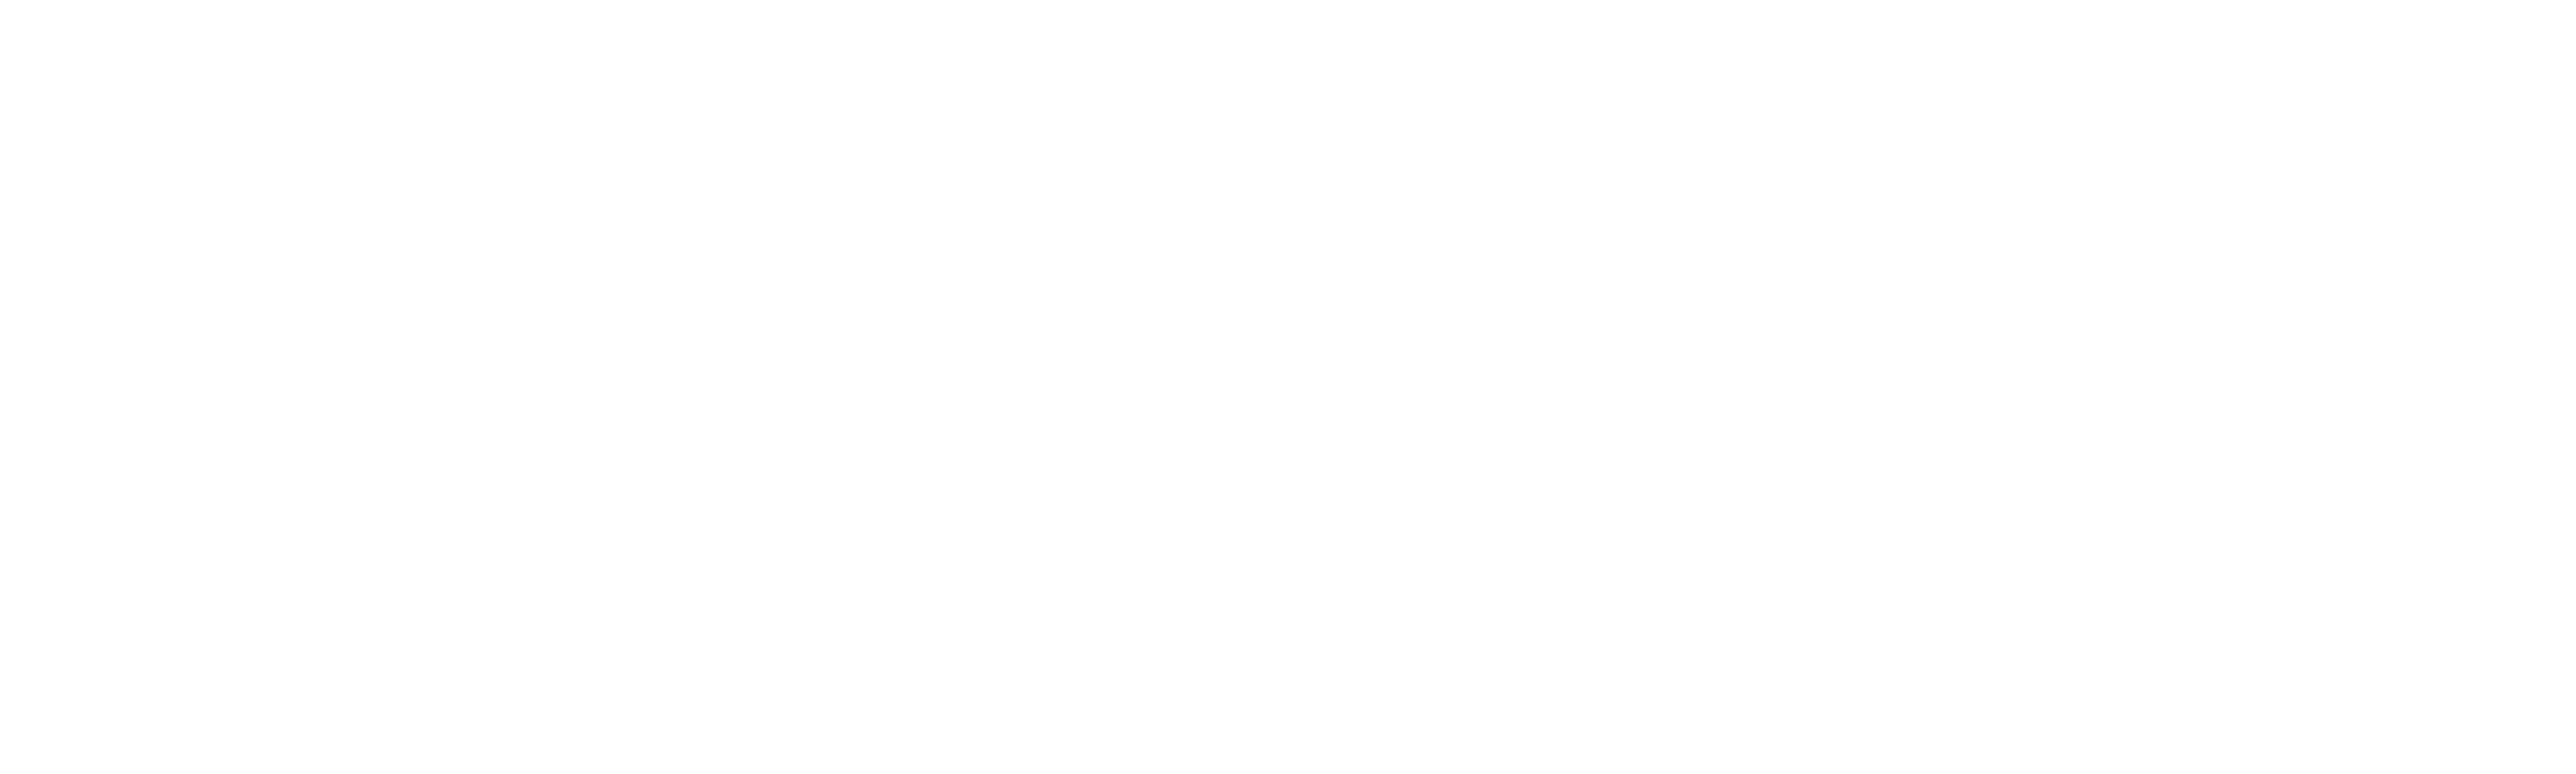 New Hyde Park Florist - Flower Delivery in New Hyde Park, NY